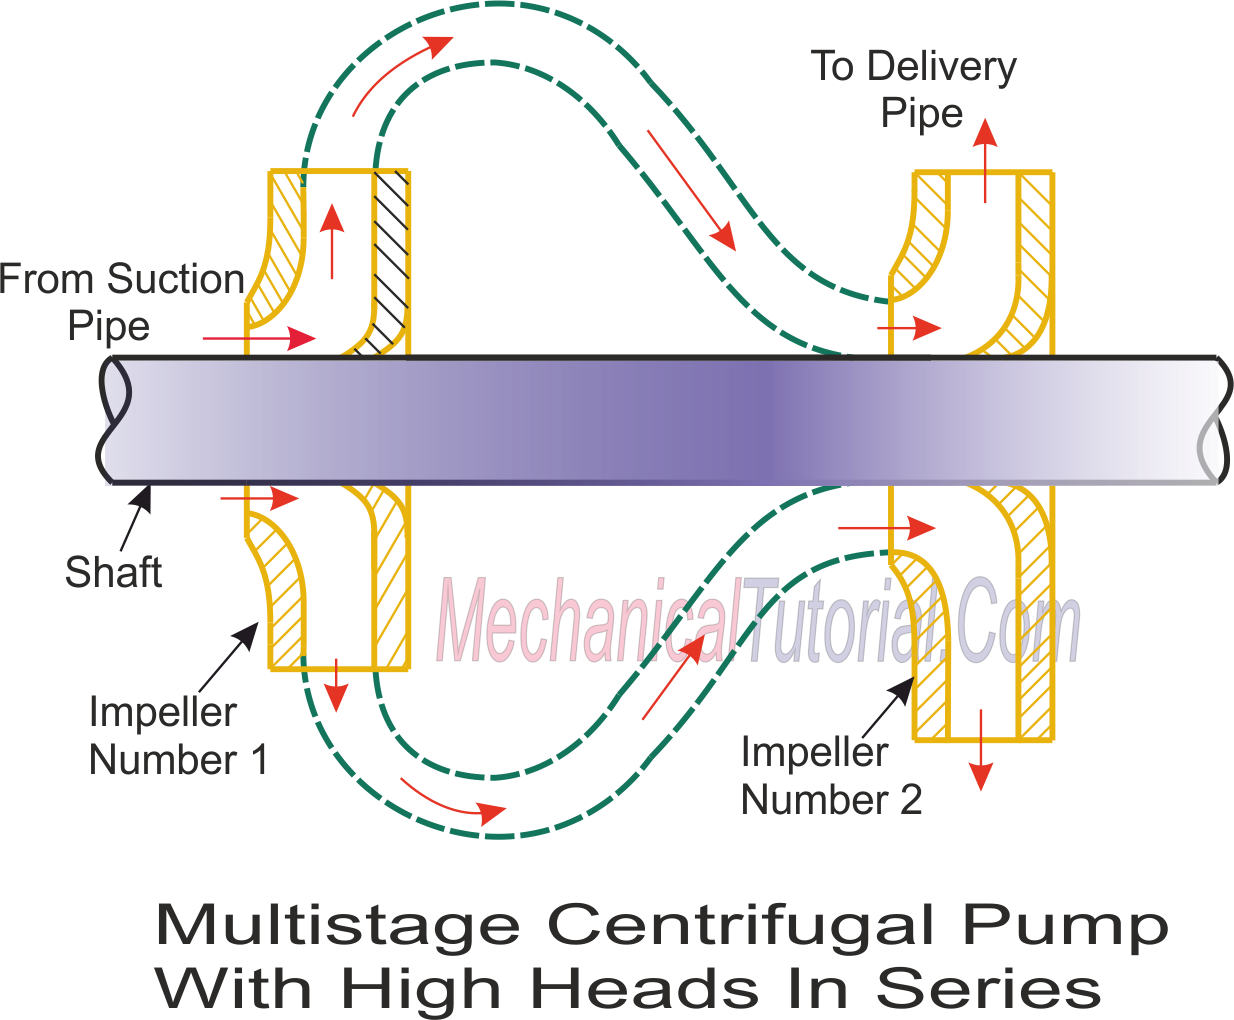 Diagram of multistage centrifugal pump for high heads